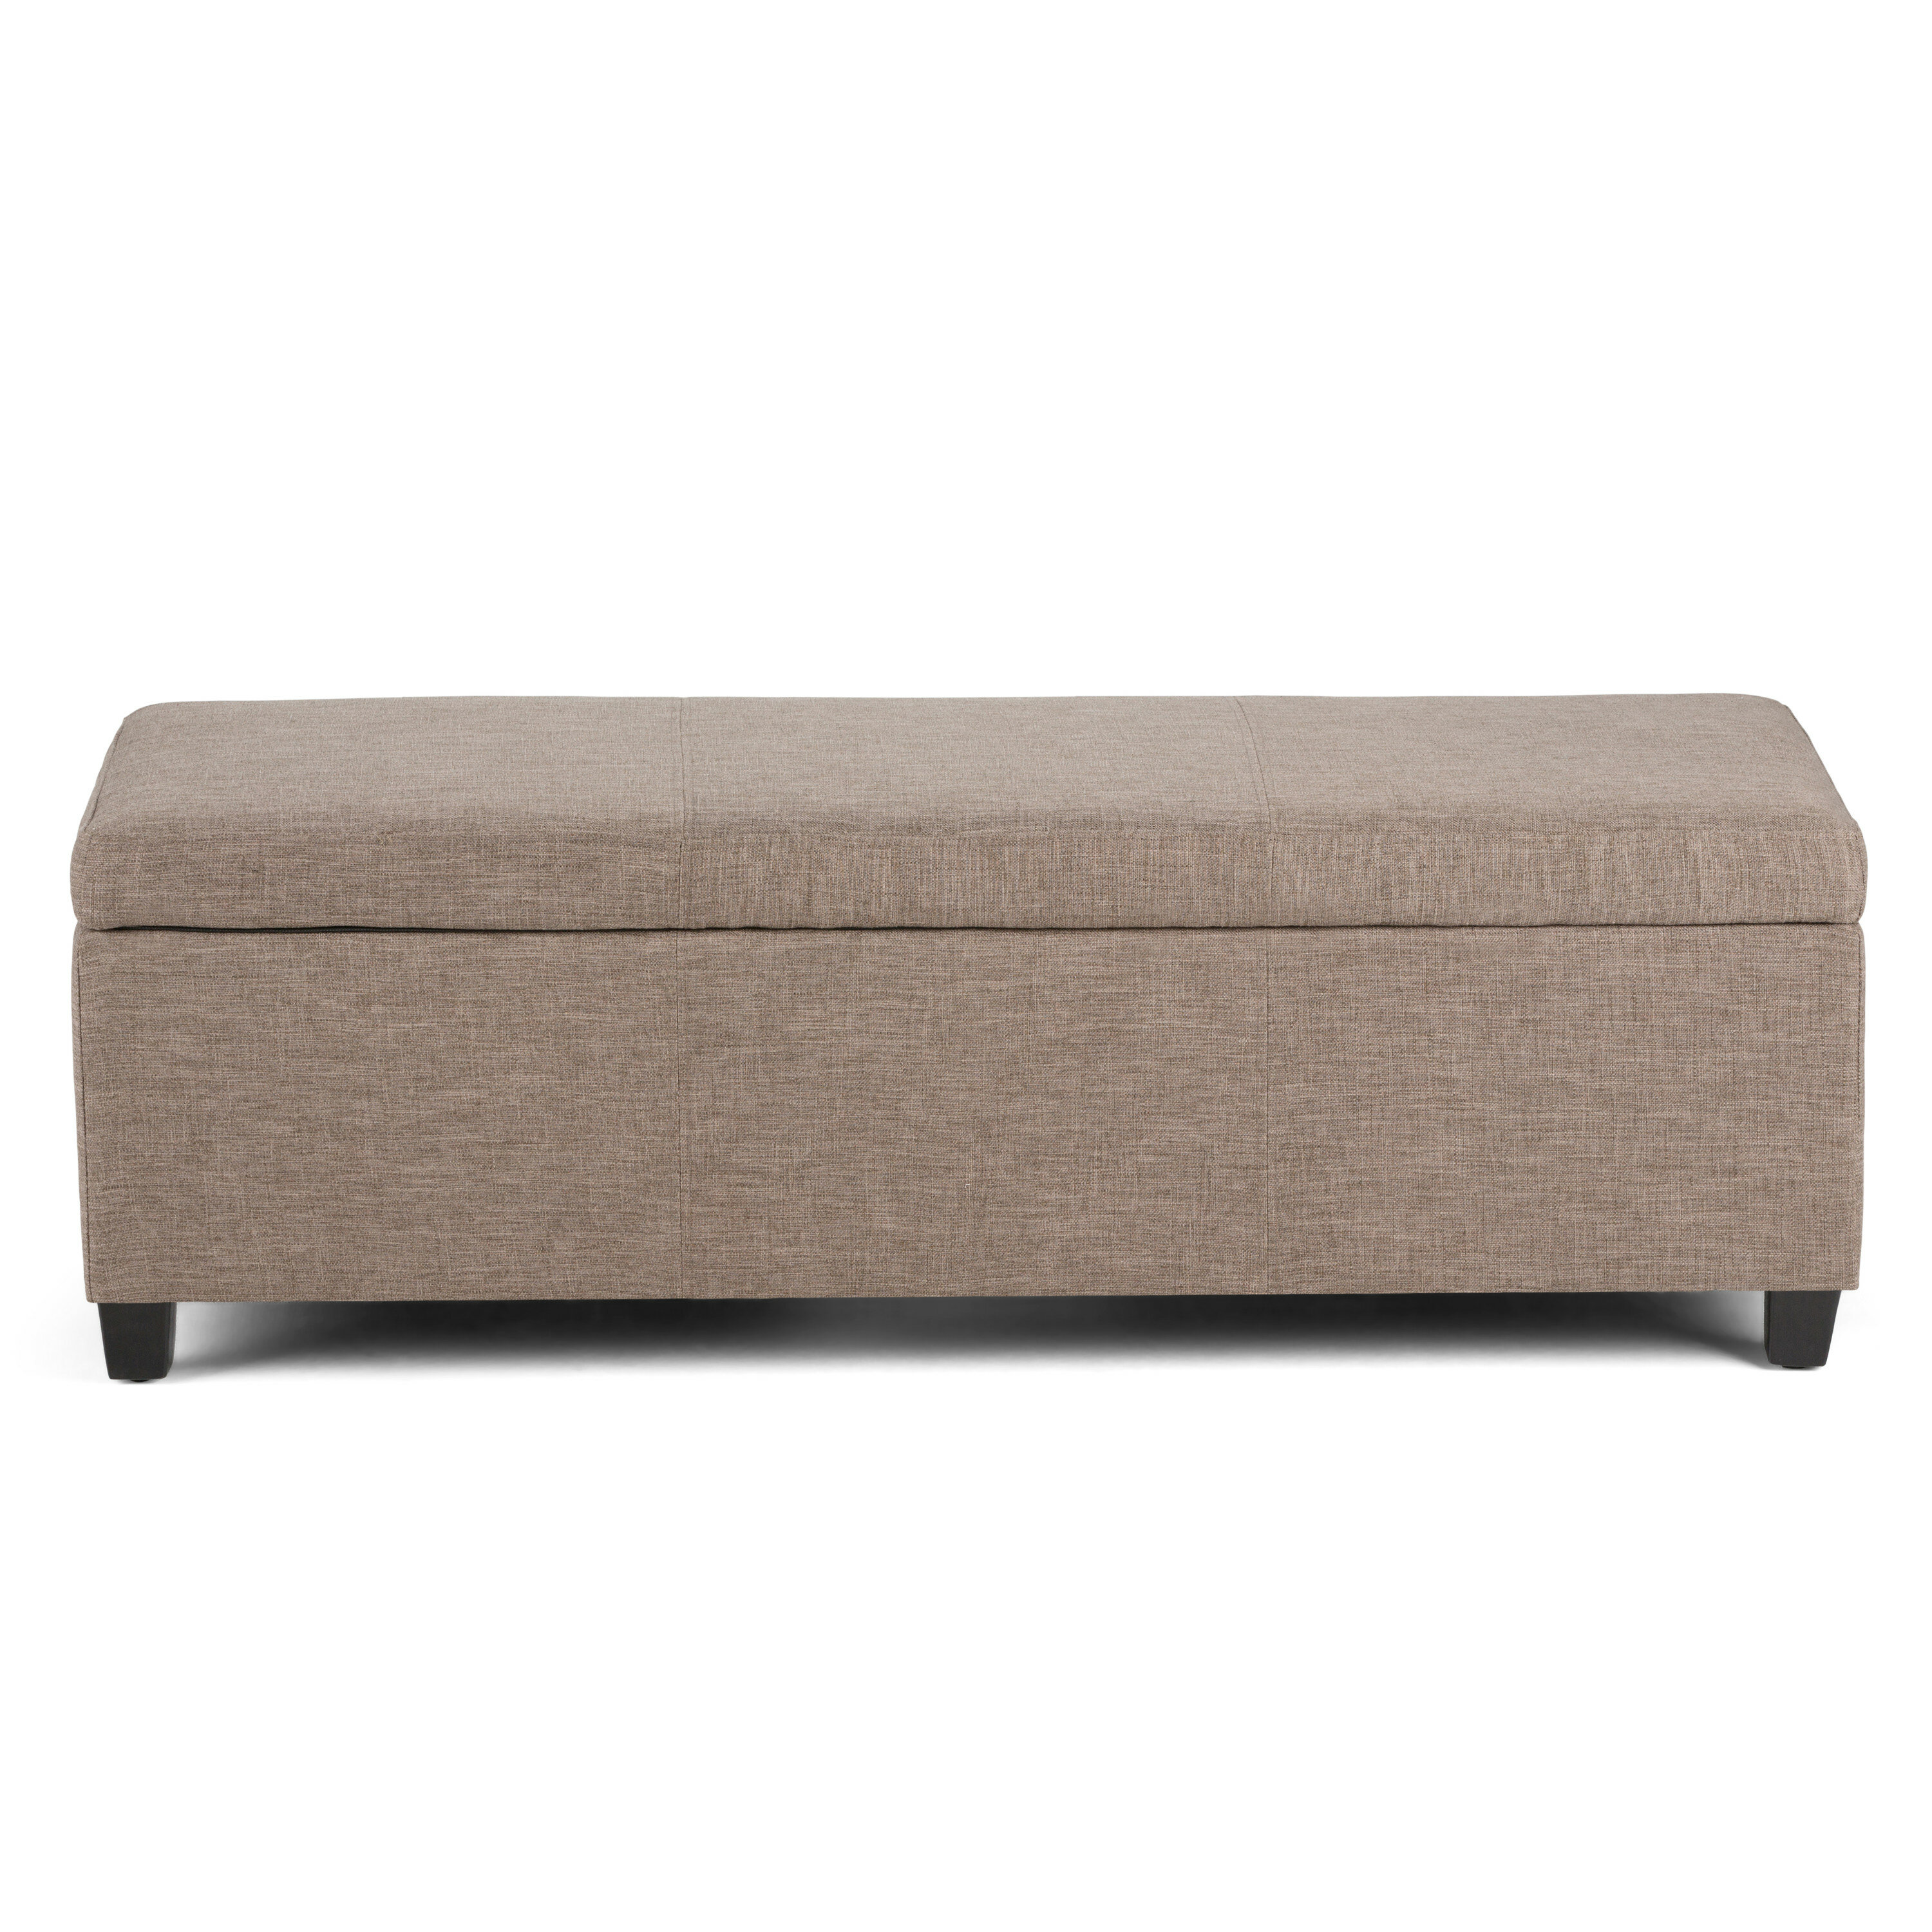 sc 1 st  Wayfair & Simpli Home Avalon Upholstered Storage Bench u0026 Reviews | Wayfair